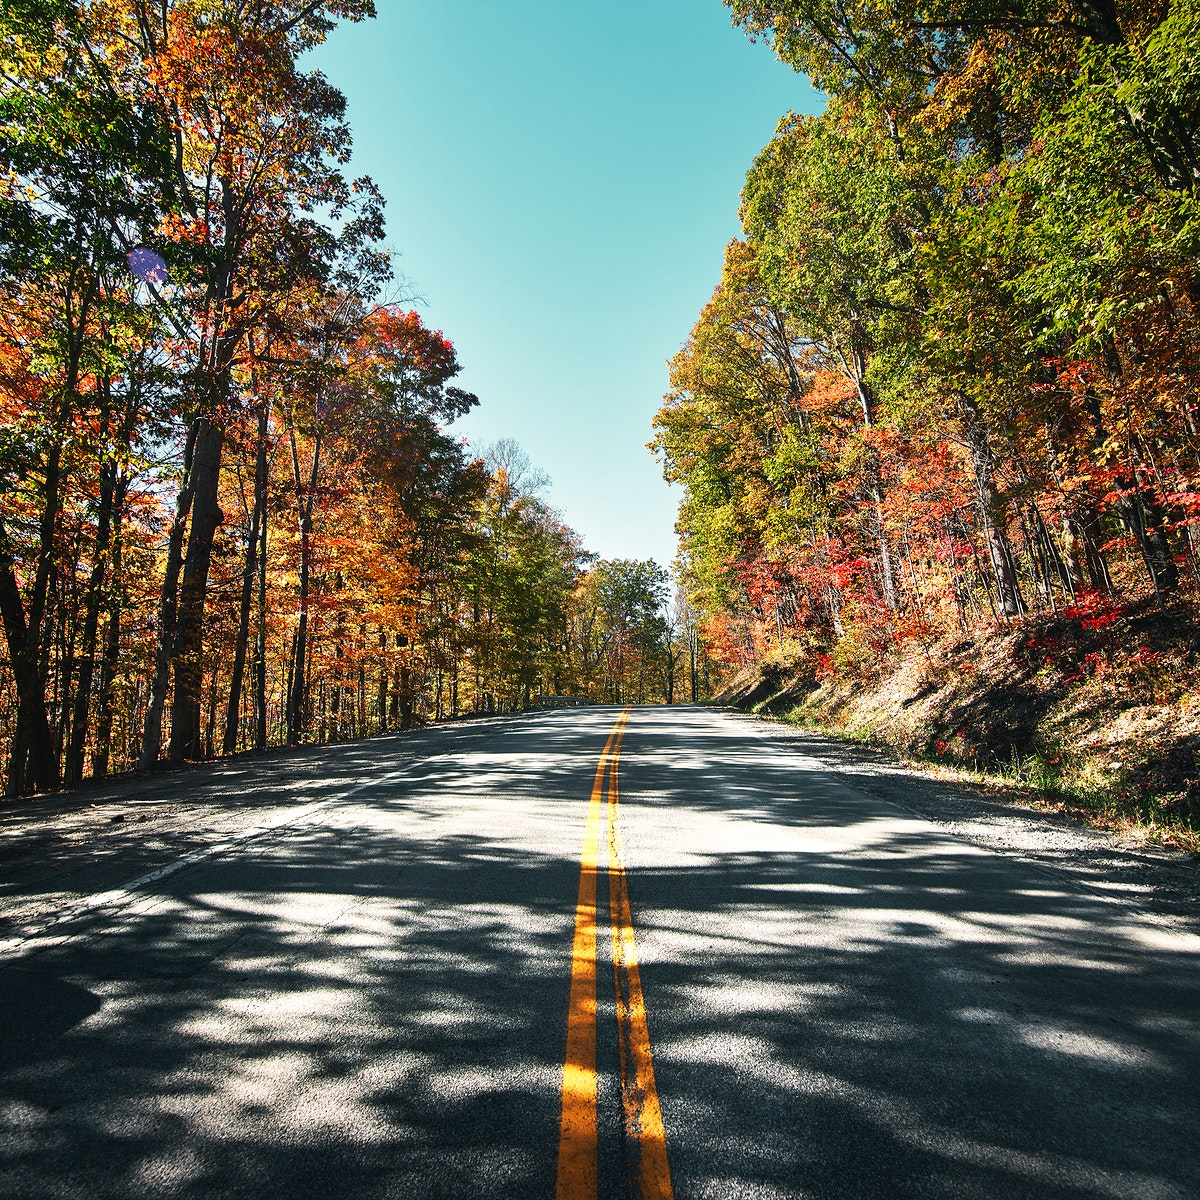 Fall scene near Babcock State Park in Fayette County, West Virginia. Original image from Carol M. Highsmith's America…